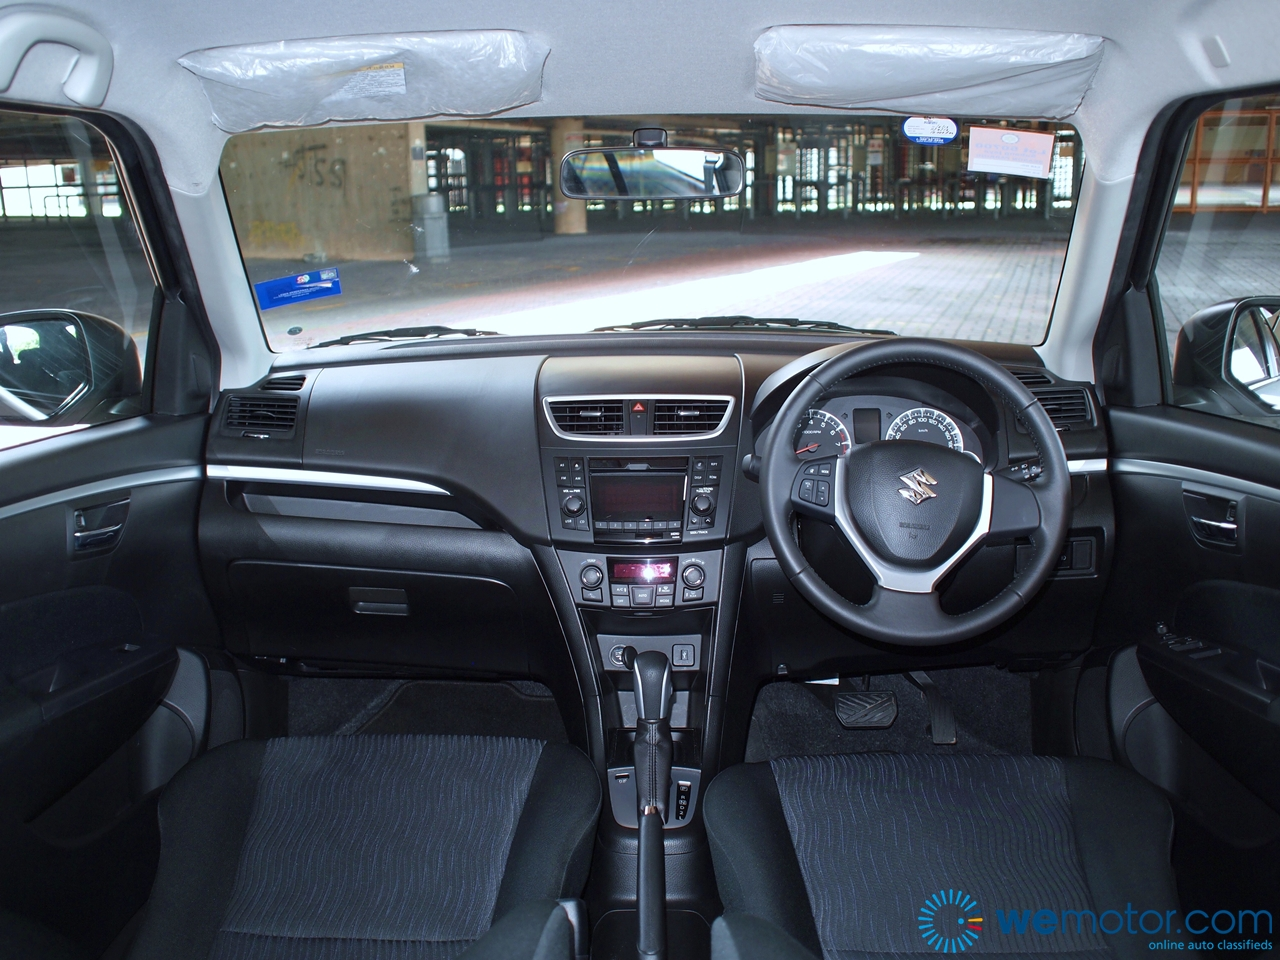 2013 Suzuki Swift 058